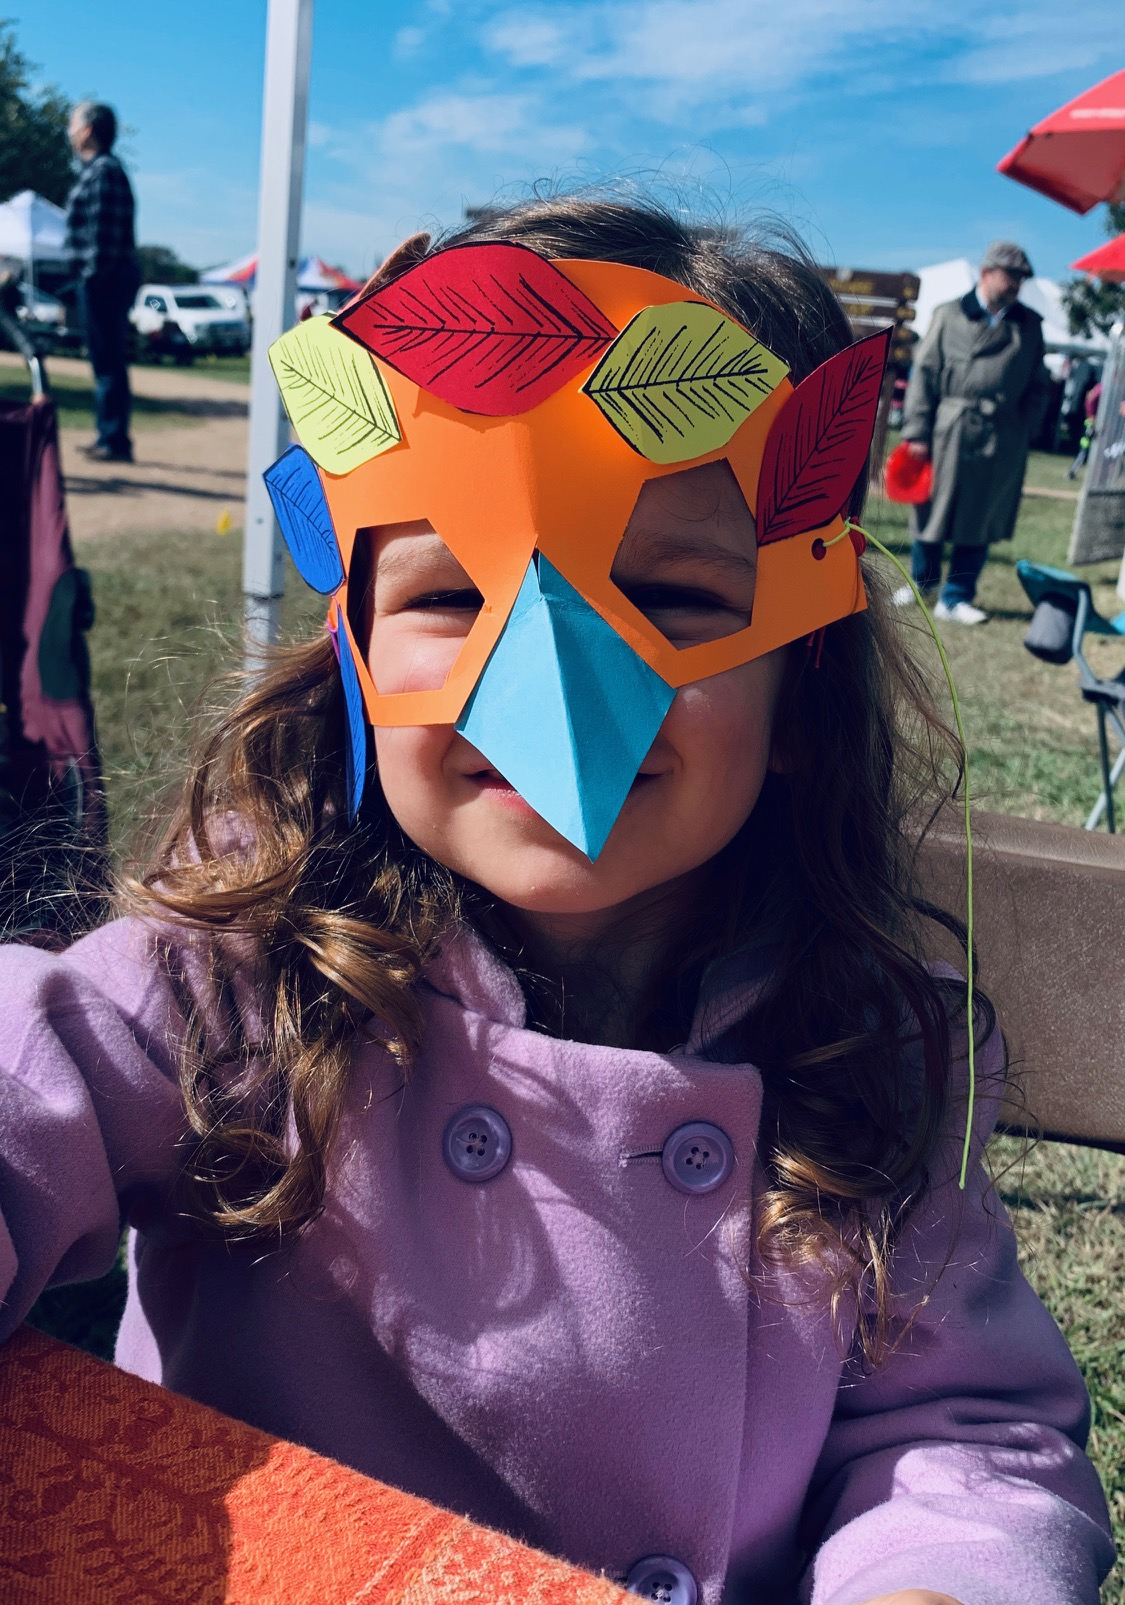 A visitor shown in another cute bird mask!